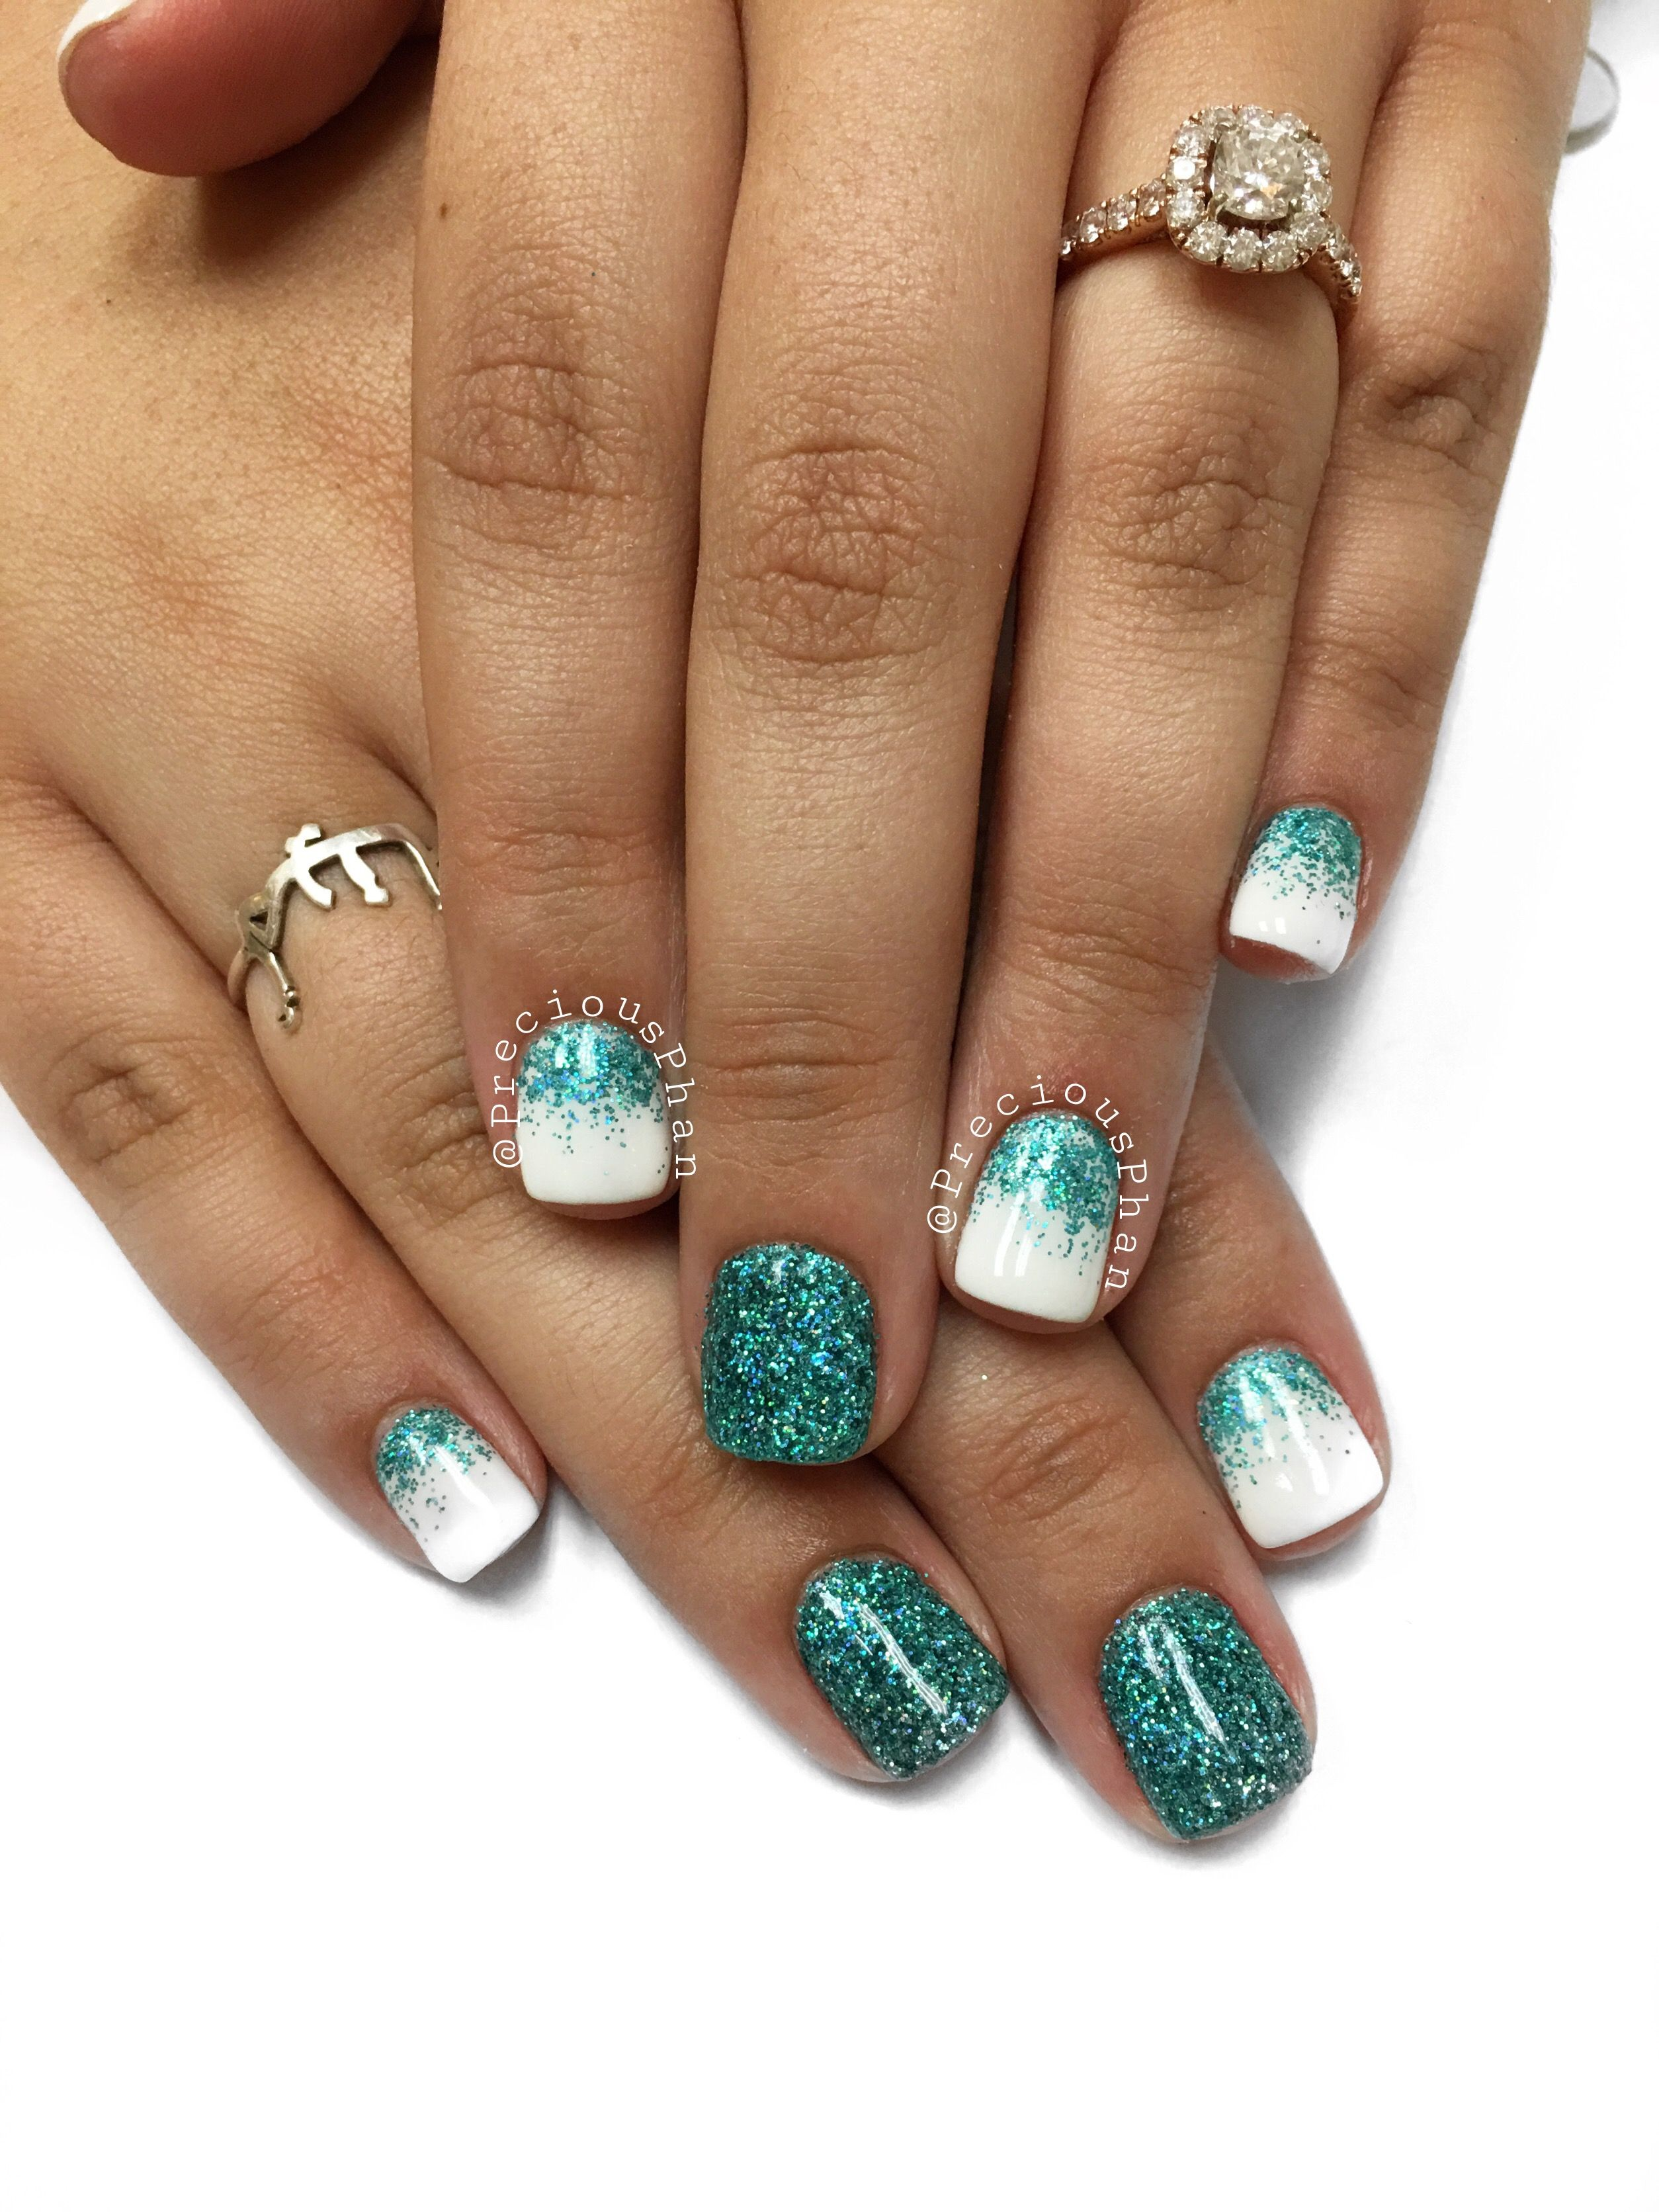 Teal ombré nails on white nails. Loose glitter nails. #PreciousPhan ...